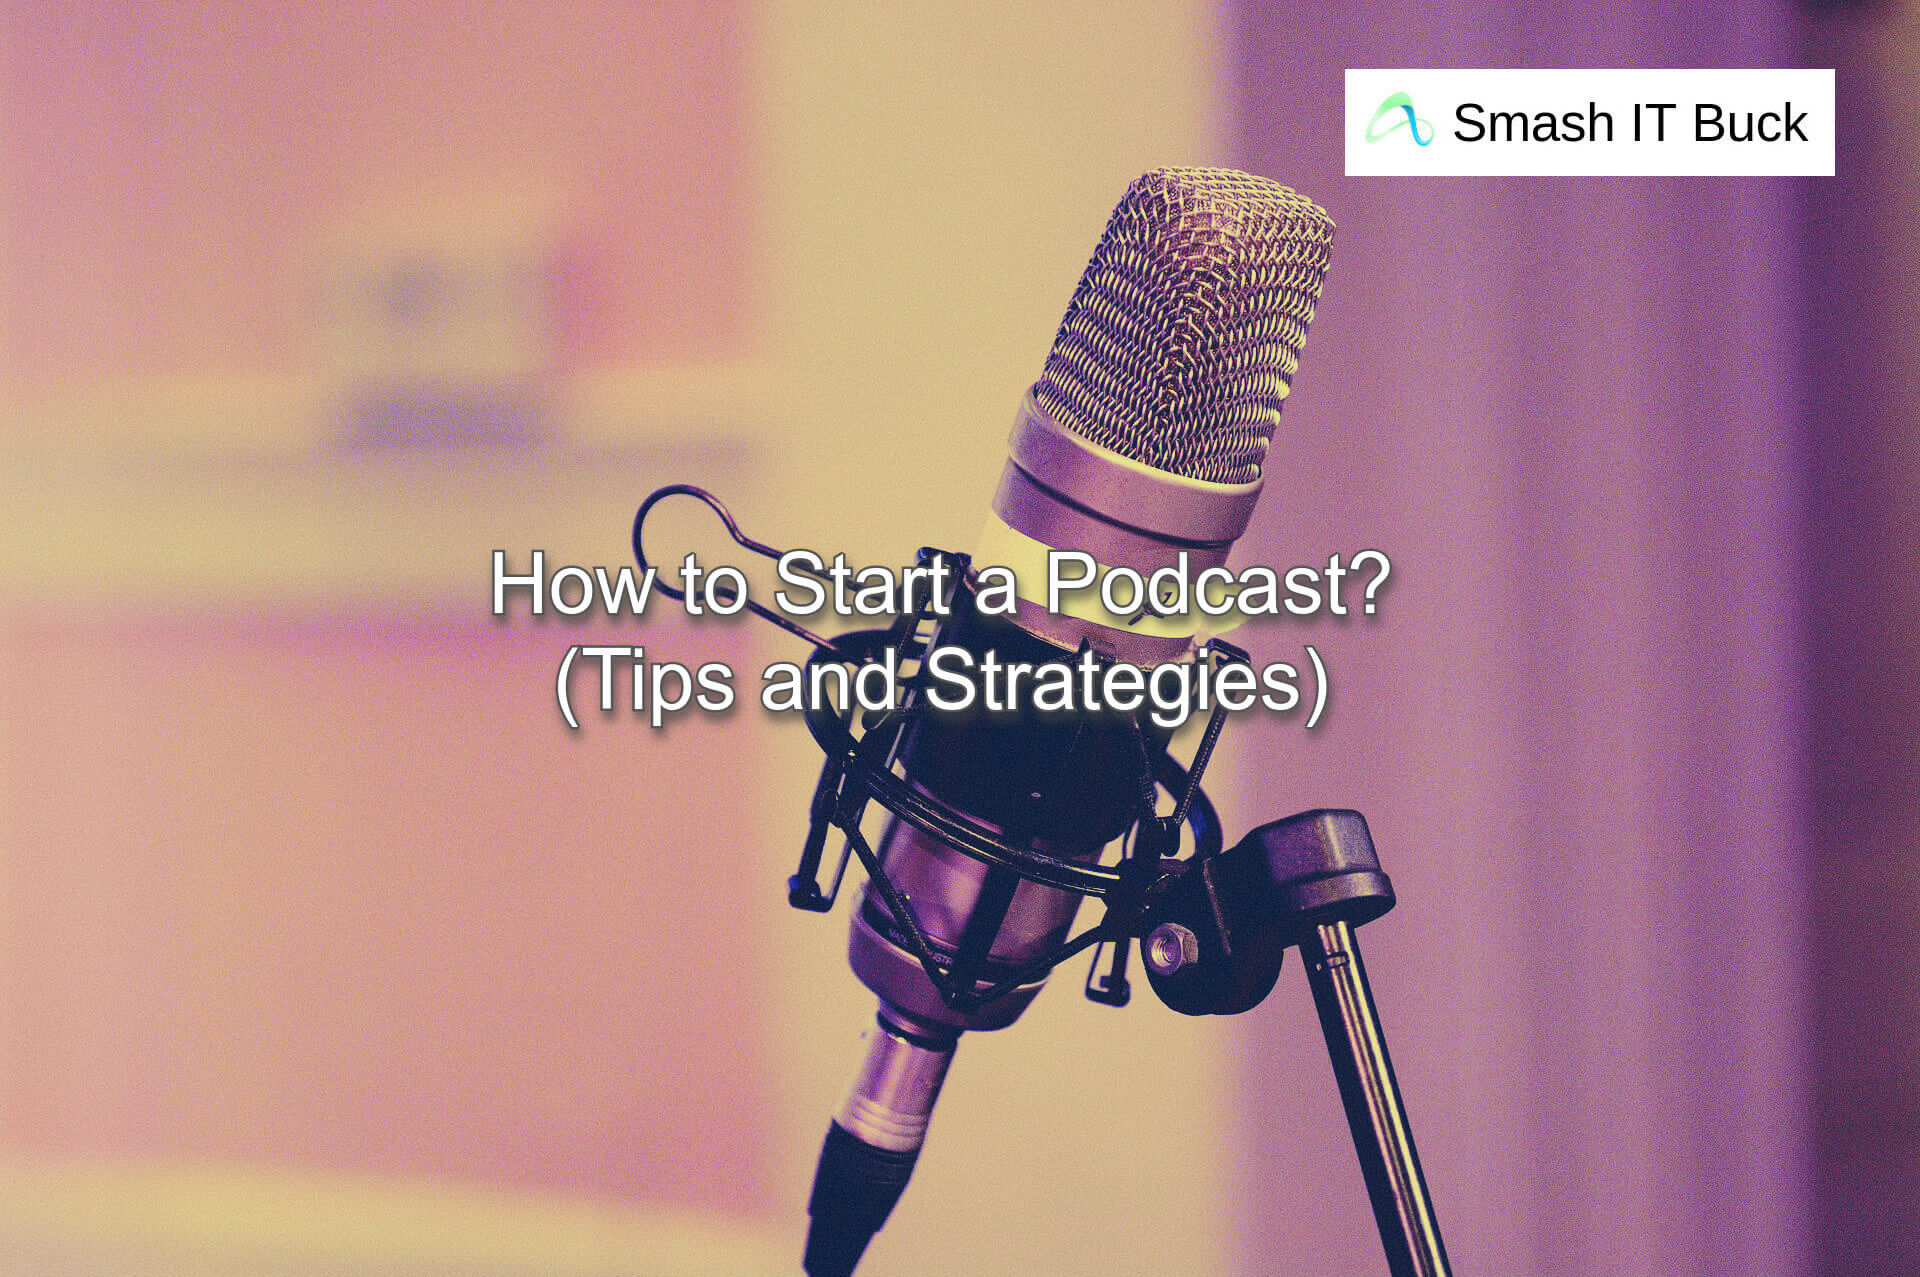 How to Start a Podcast in 2021 (Tips and Strategies)